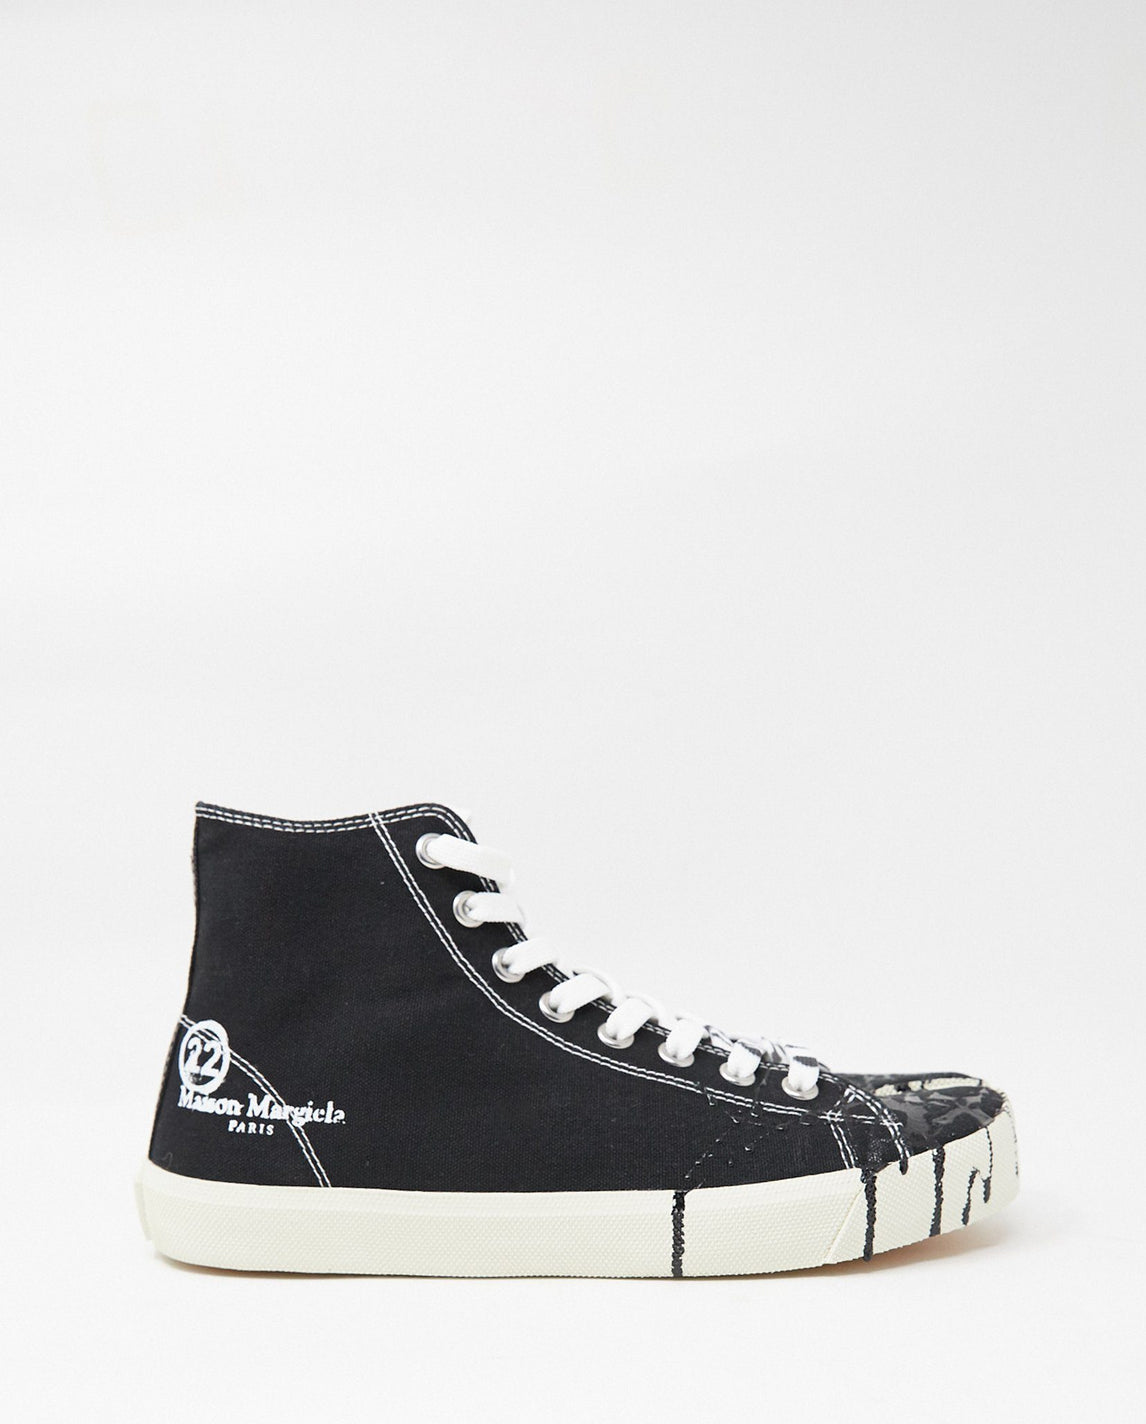 High-Top Tabi Sneakers - Black MENS MAISON MARGIELA